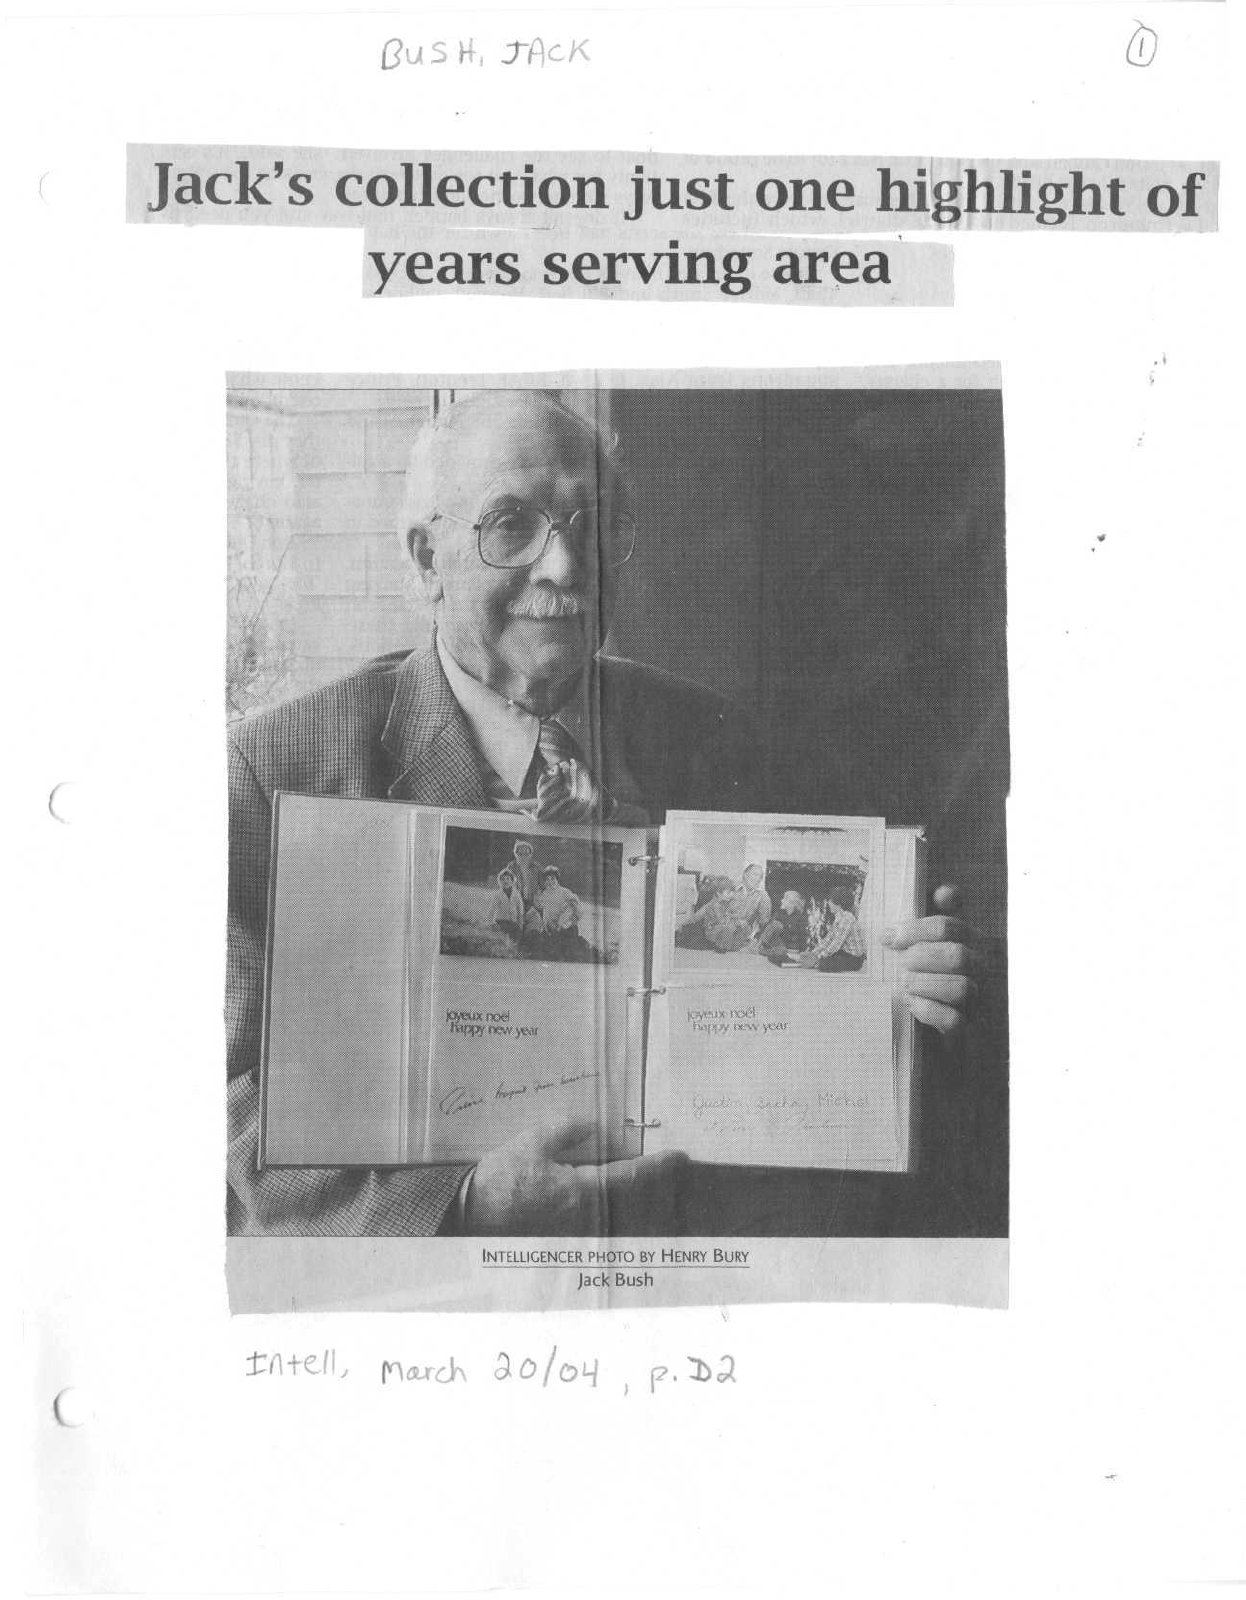 Jack's collection just one highlight of years serving area